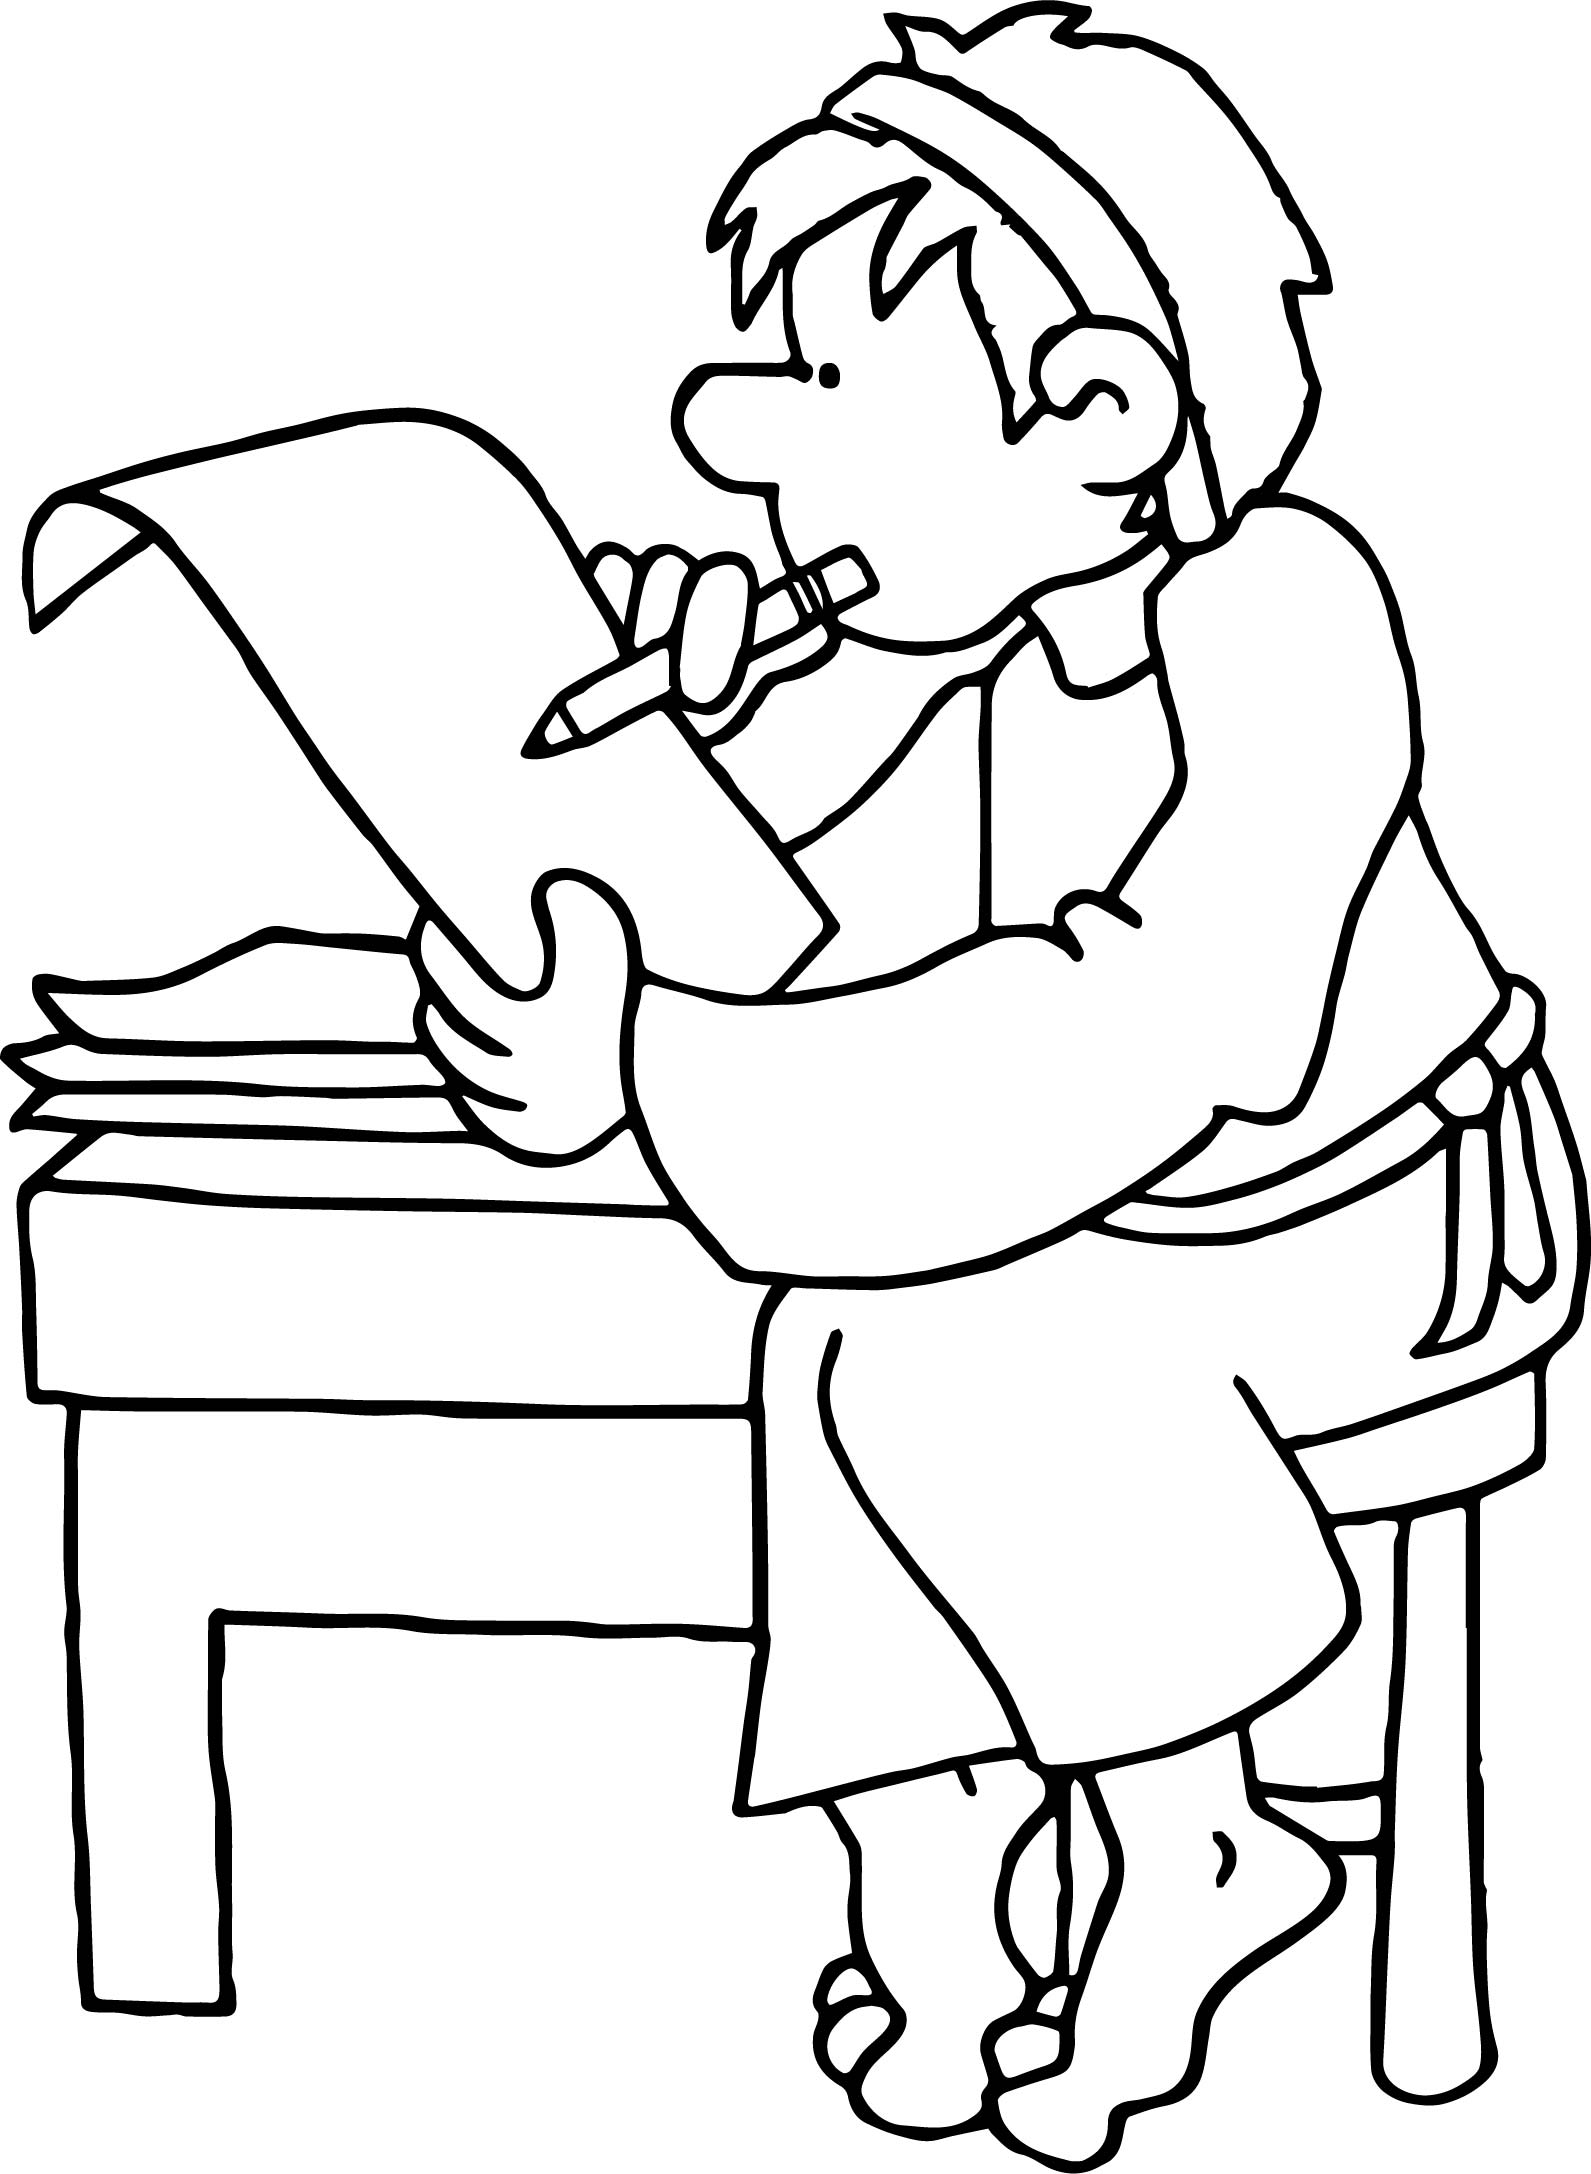 Good apostle paul coloring page for Apostle paul coloring page